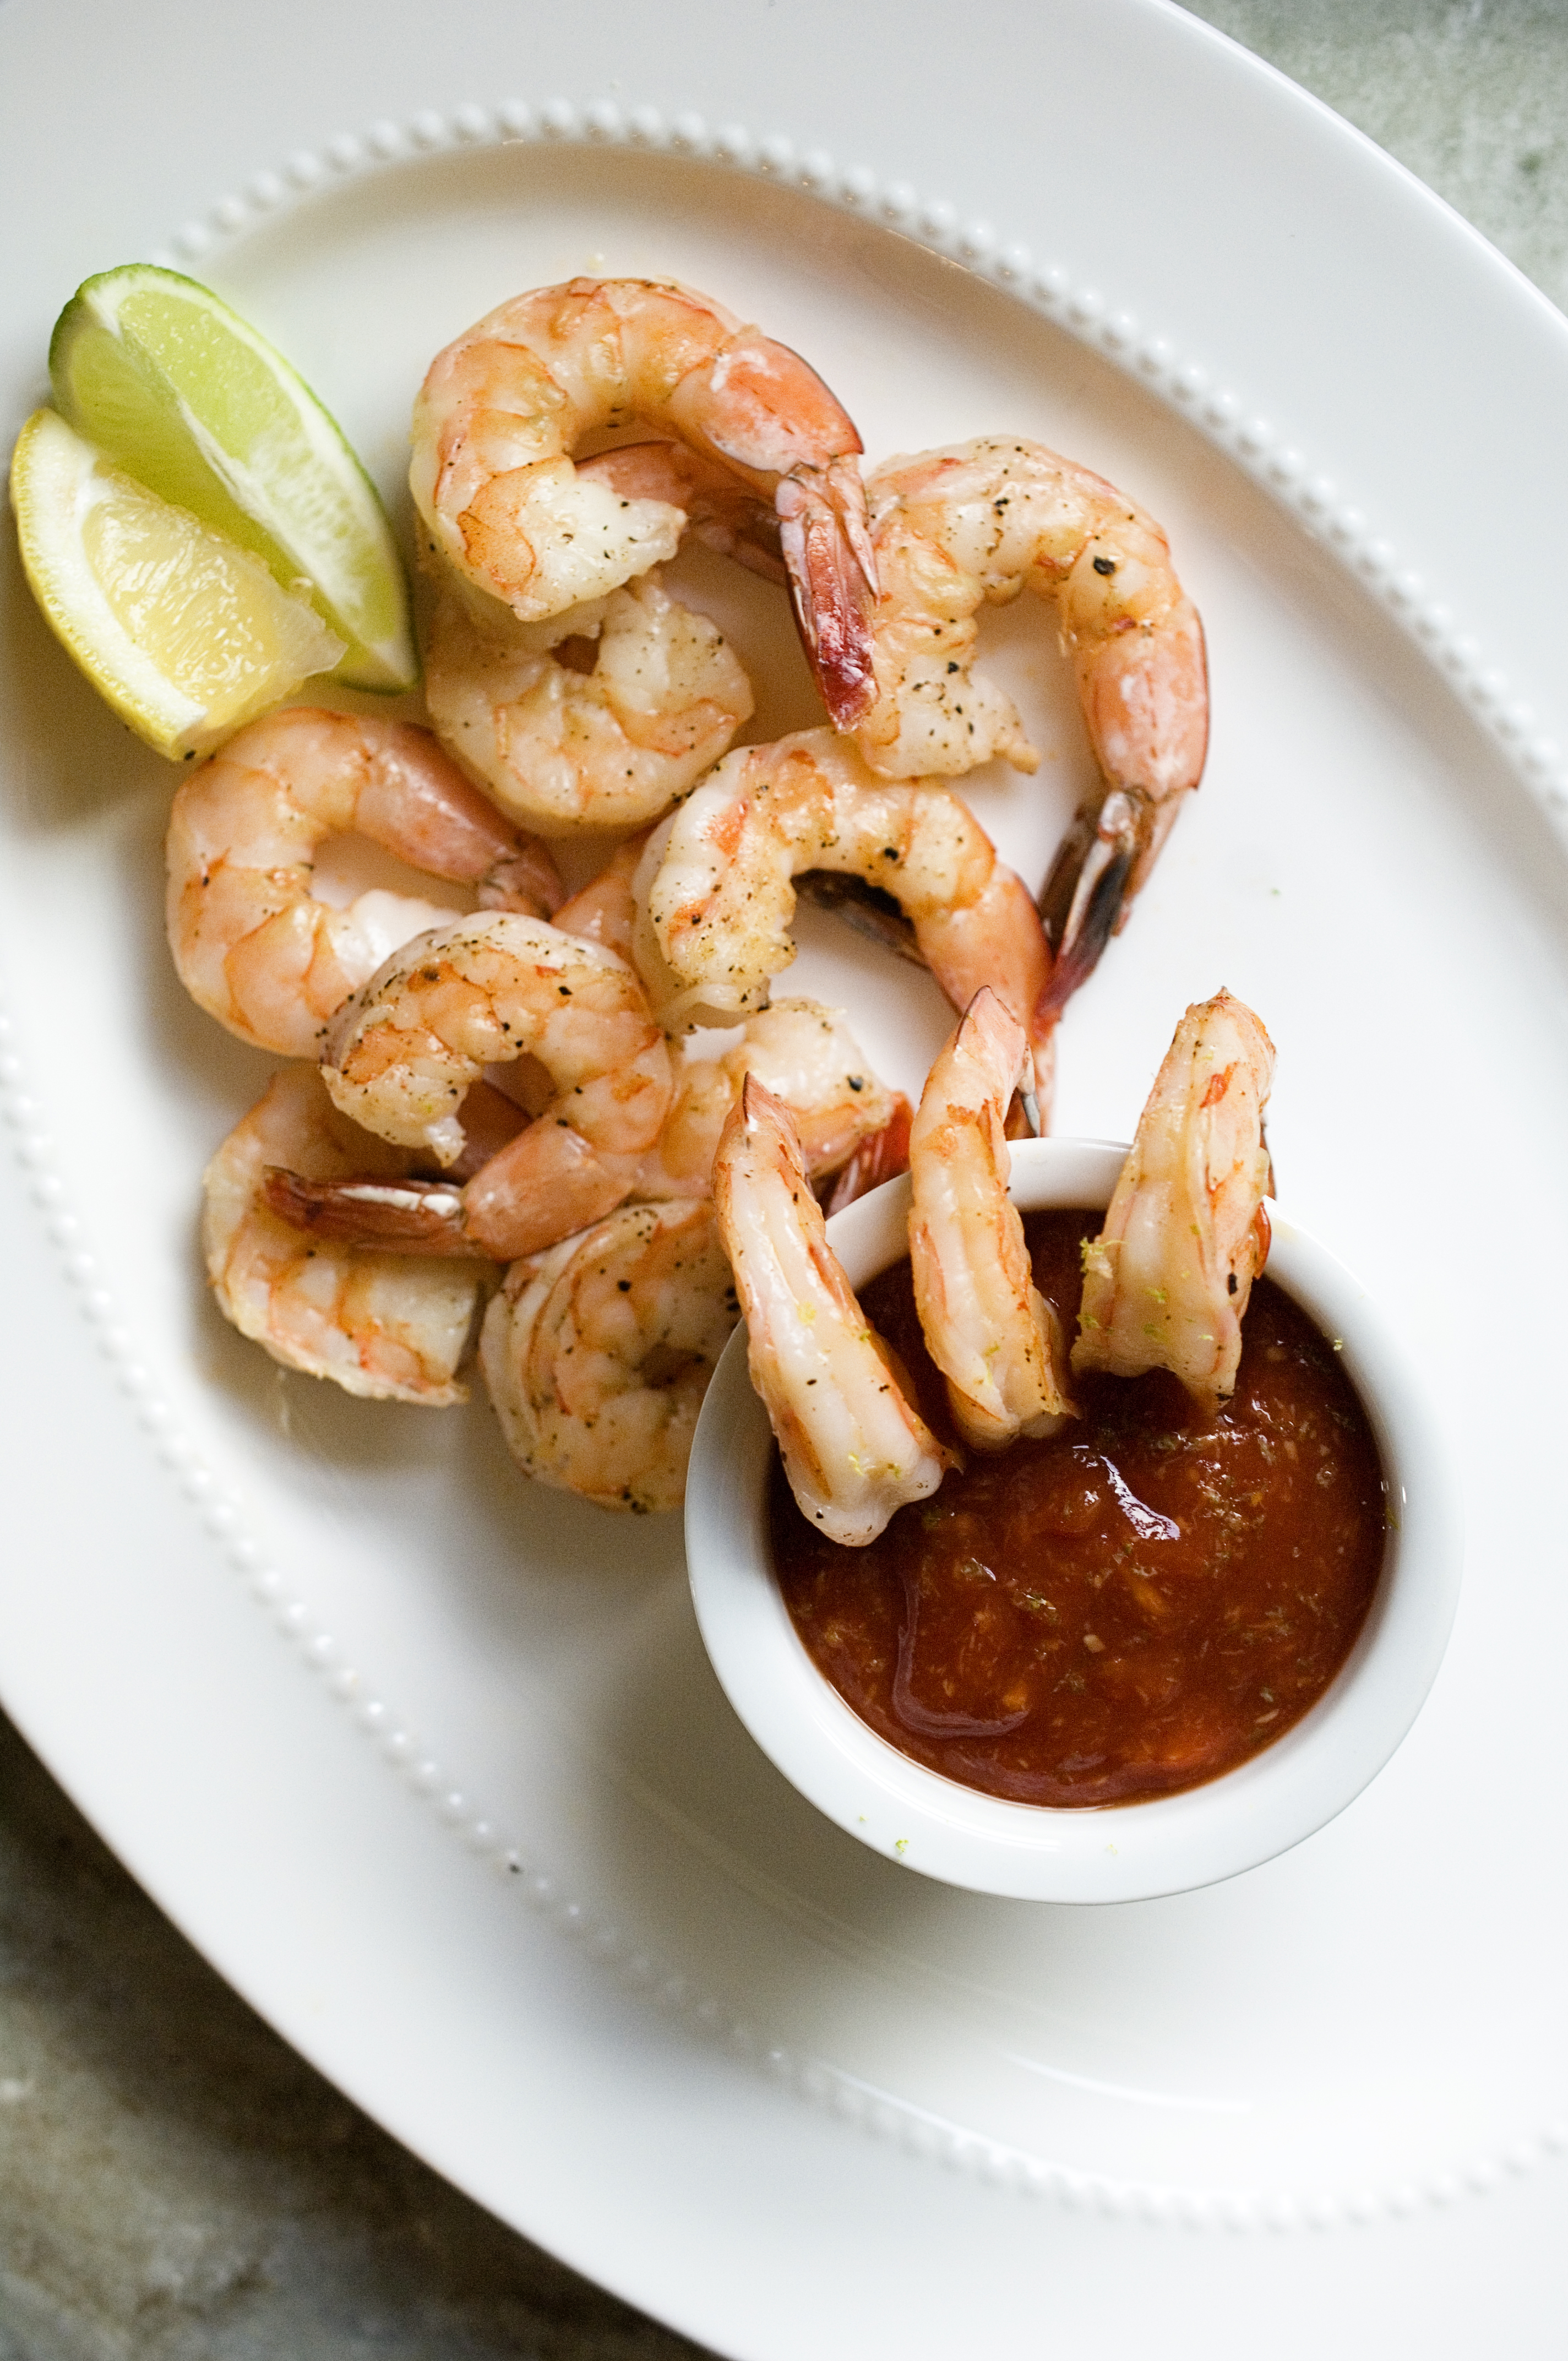 Roasted Shrimp Cocktail With Sriracha Lime Dipping Sauce 5 Easy